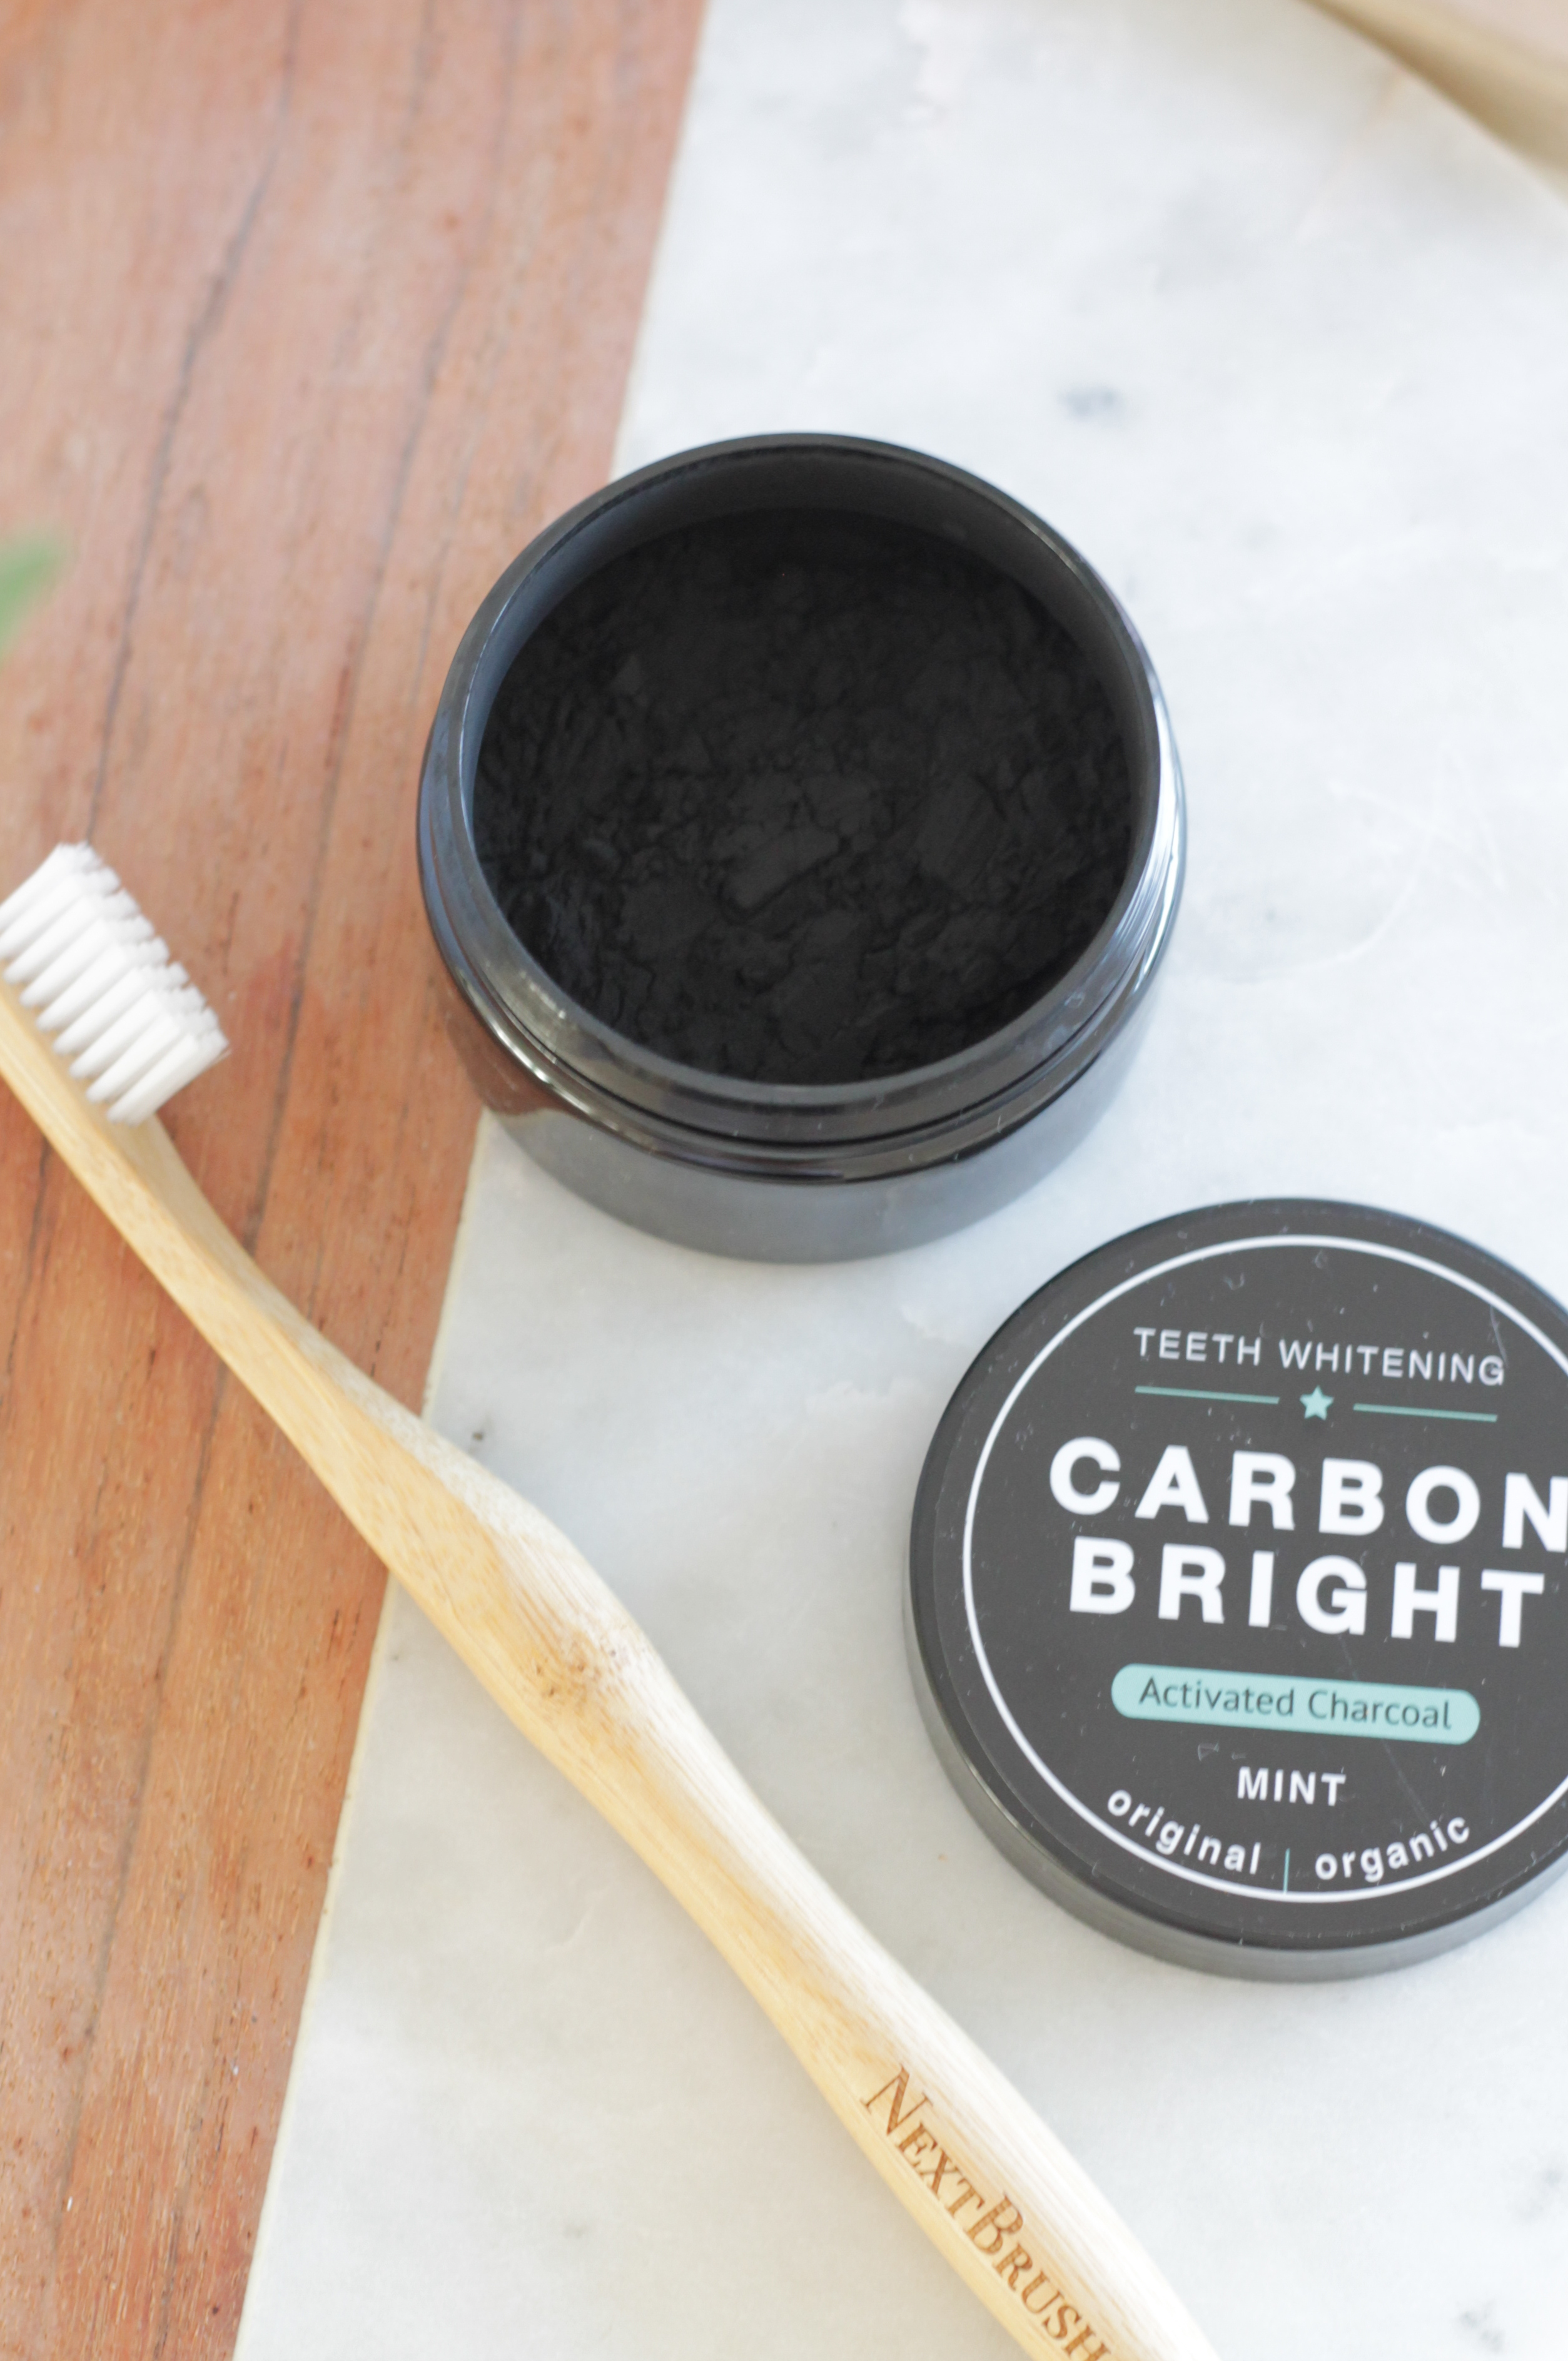 Carbon Bright Activated Charcoal